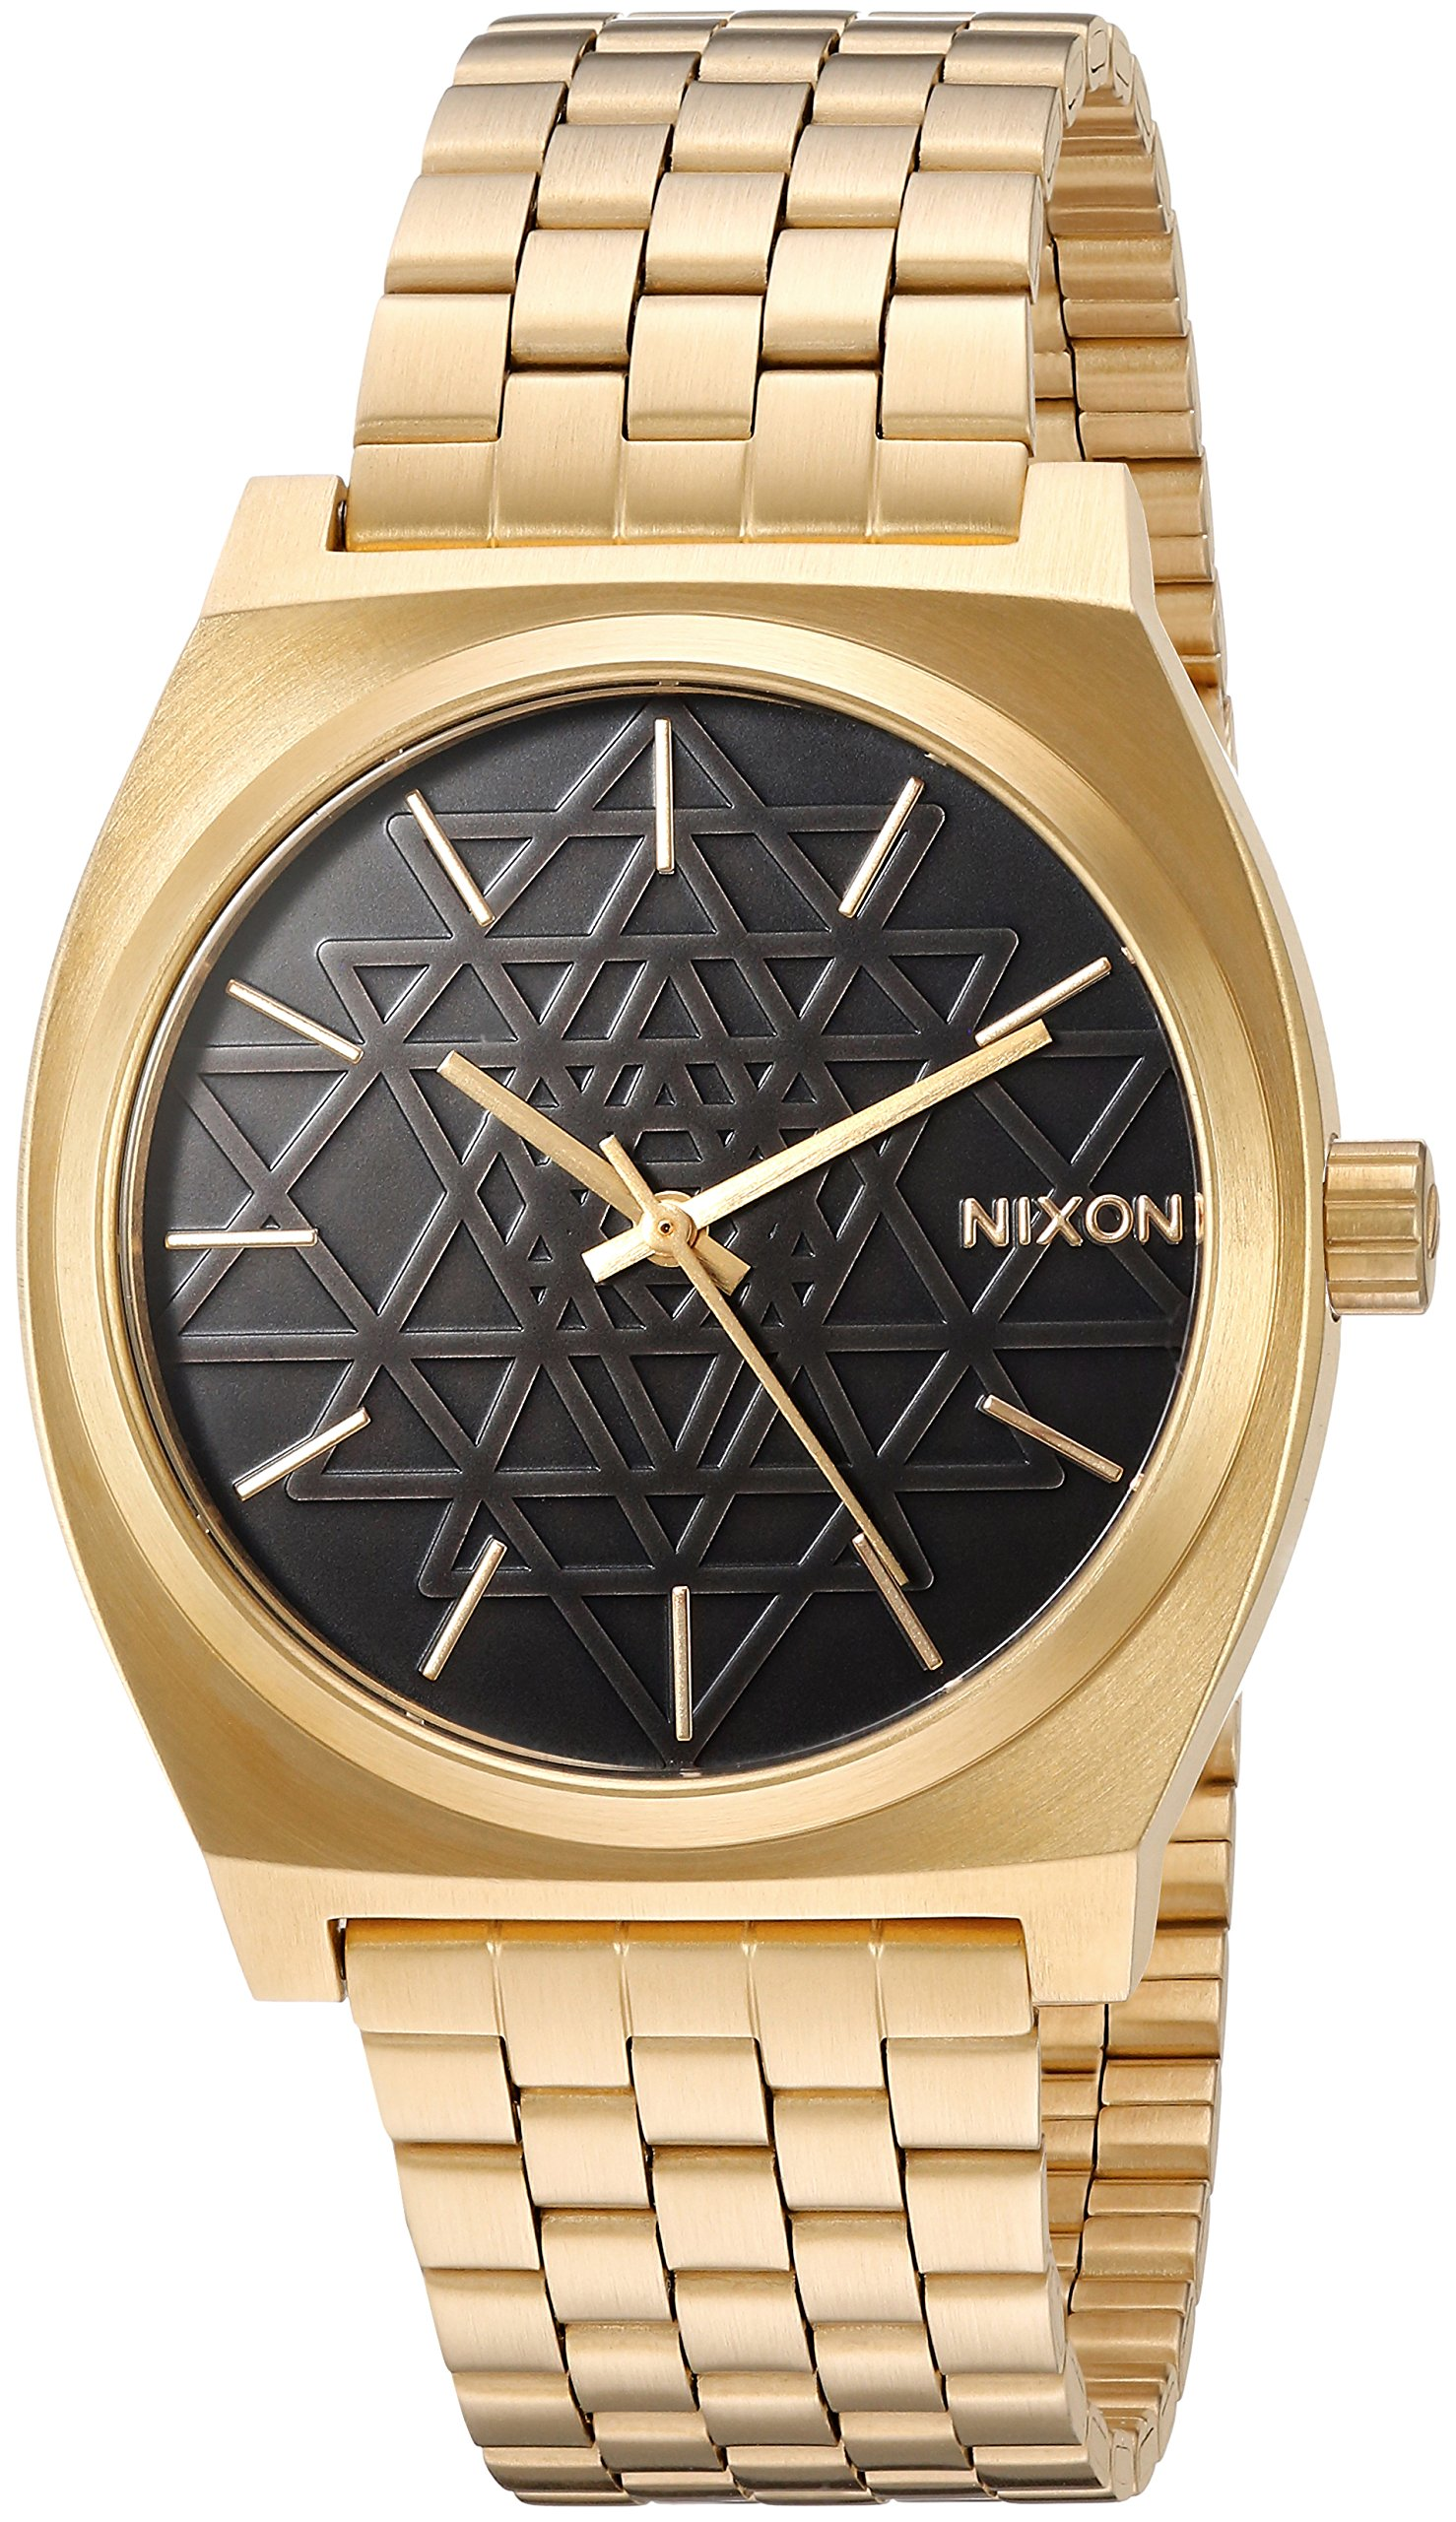 Nixon Time Teller A0452478-00. Gold and Black Women's Watch (37mm. Gold Metal Band/ Black Stamped Watch Face) by NIXON